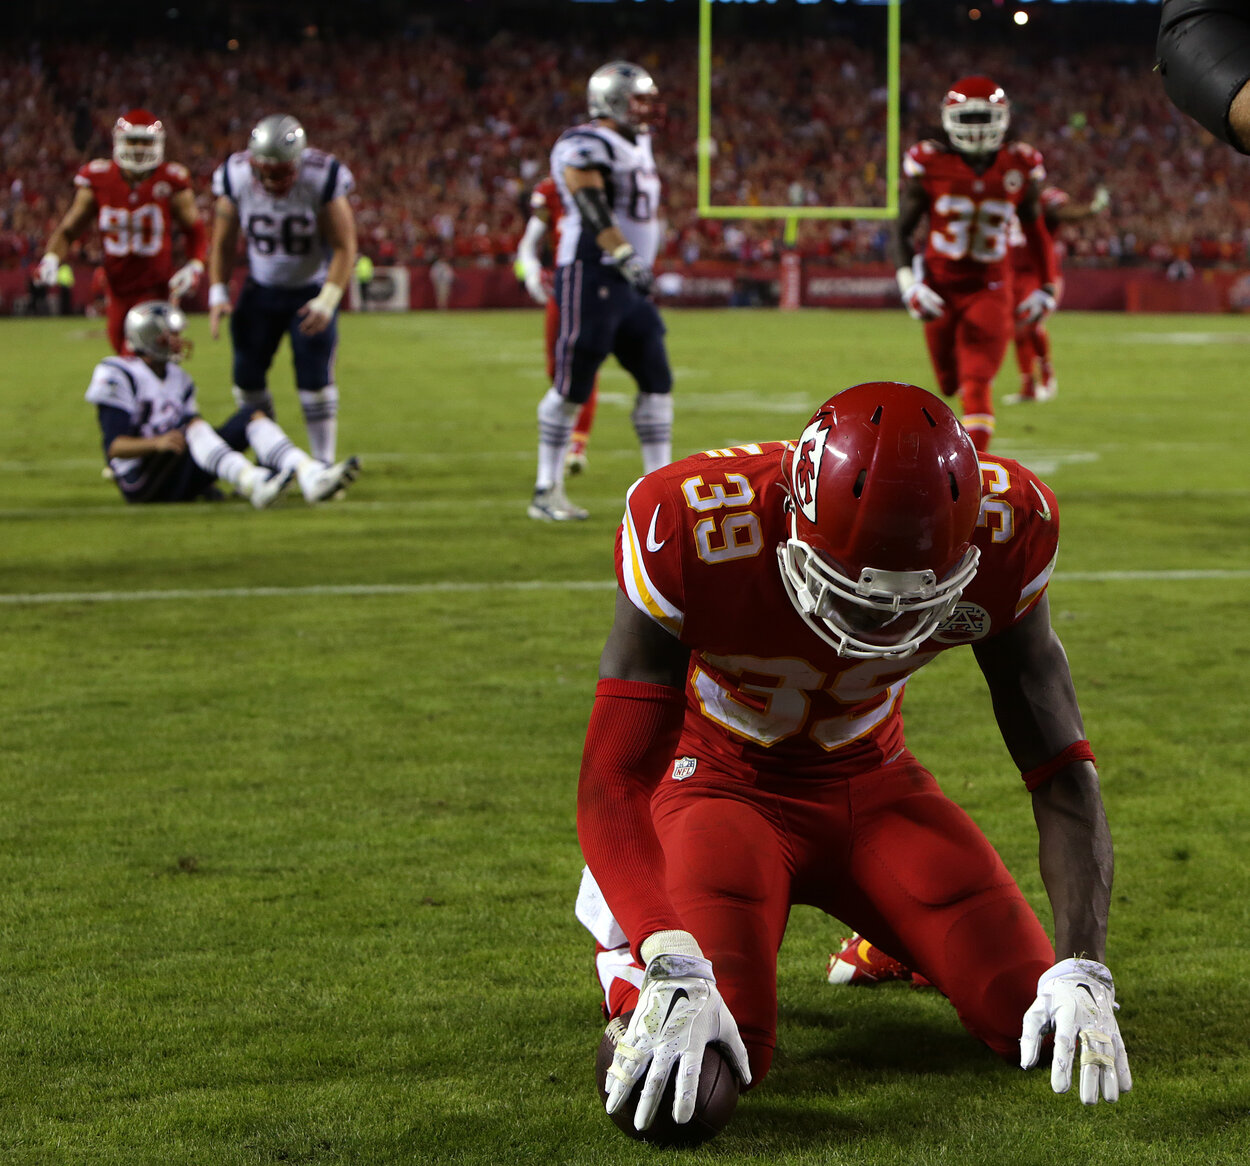 The NFL is used to bad optics, but an official penalizing former Kansas City Chiefs defensive back Husain Abdullah for an in-game prayer went too far.